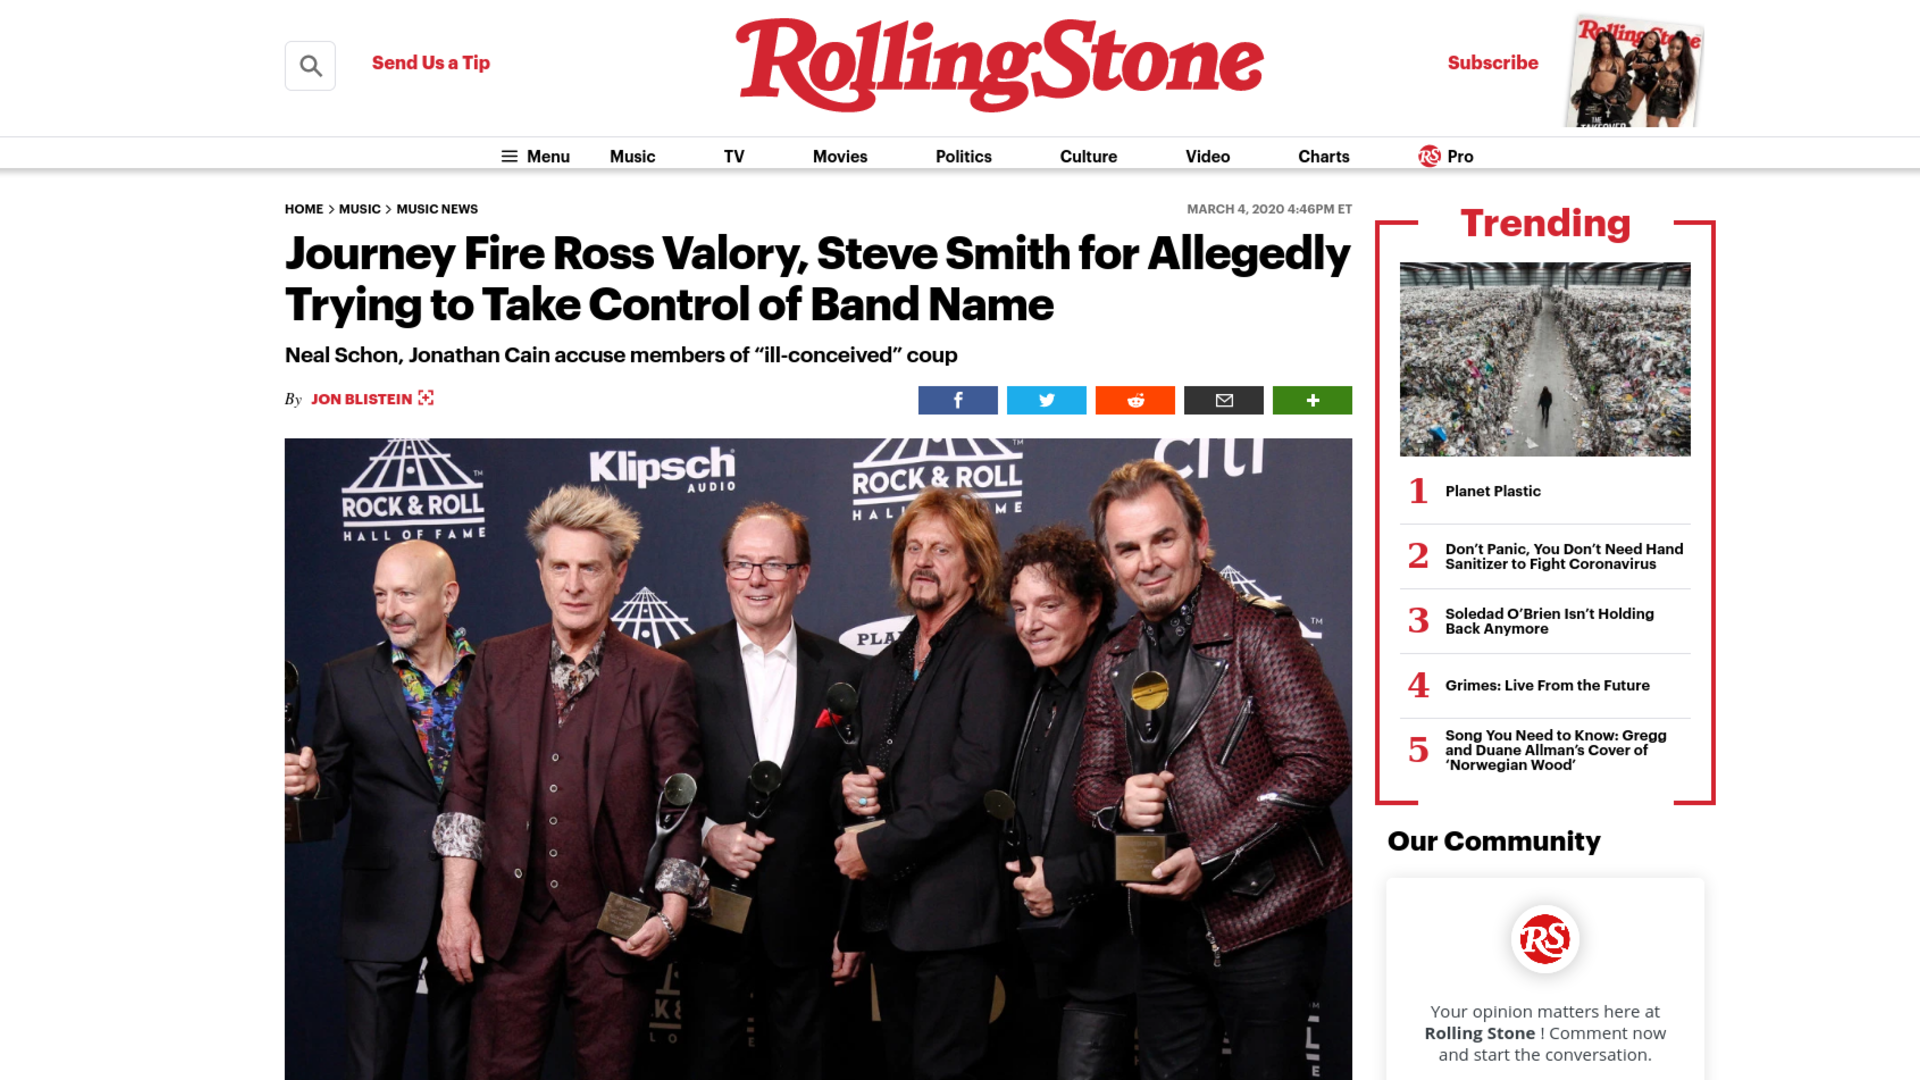 Fairness Rocks News Journey Fire Ross Valory, Steve Smith for Allegedly Trying to Take Control of Band Name